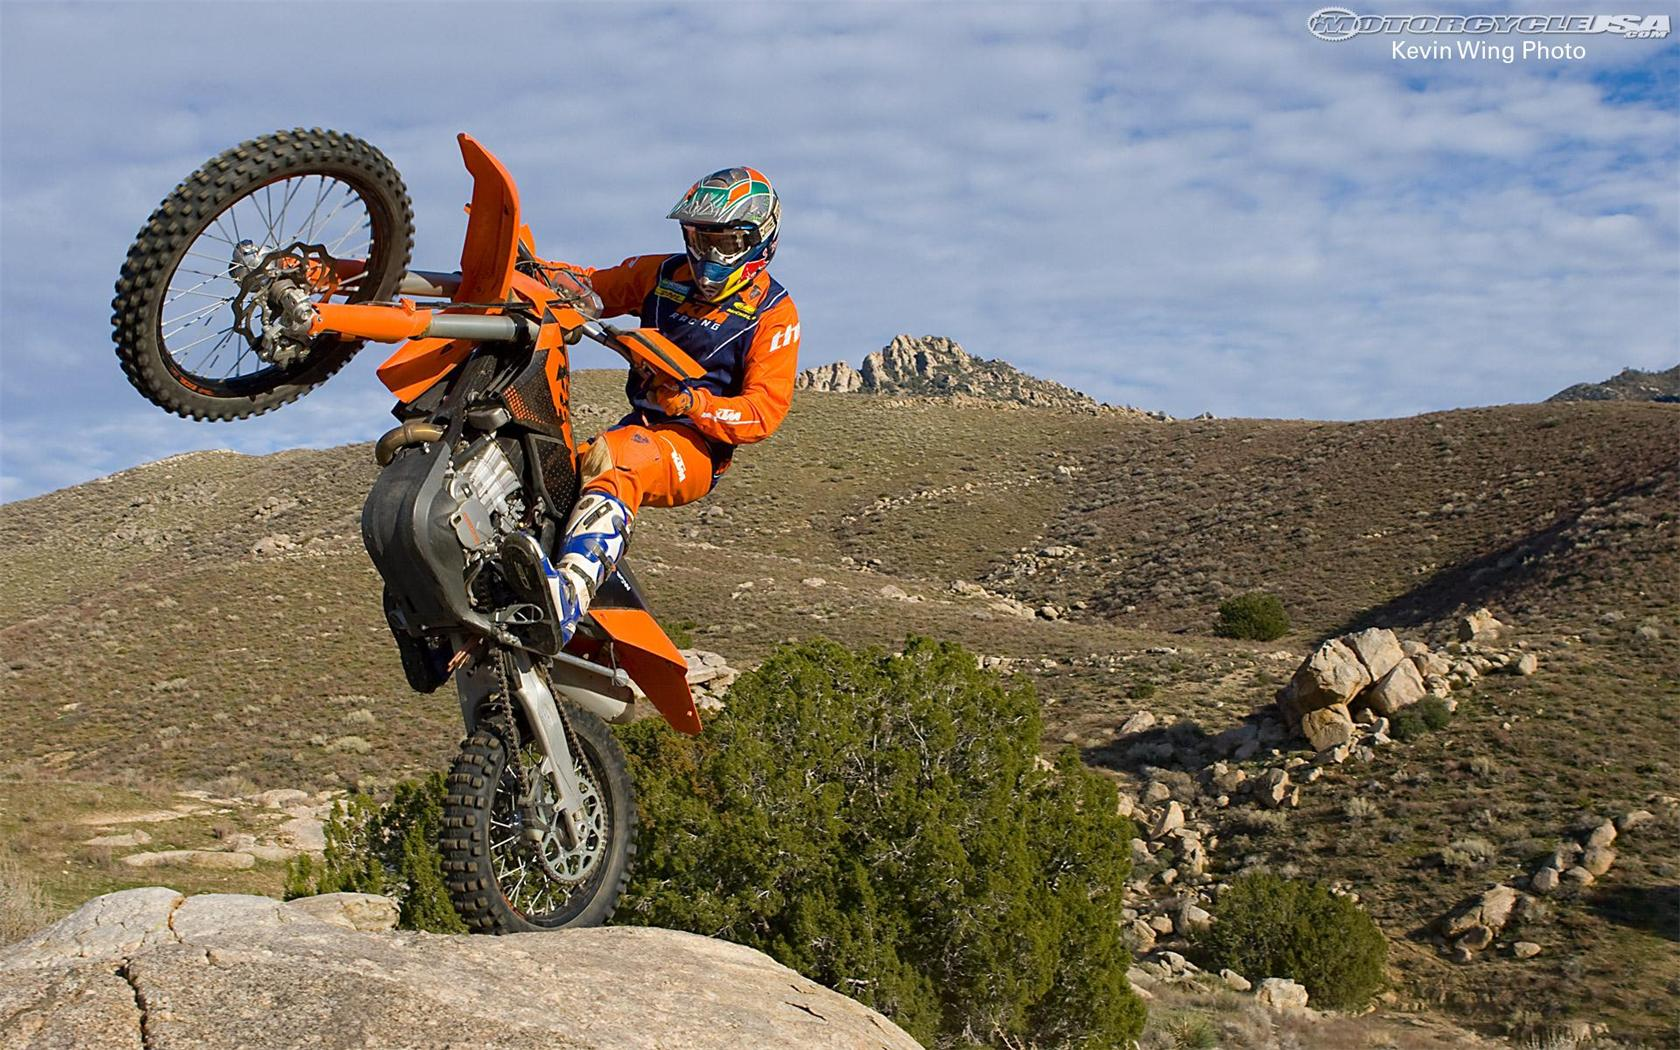 KTM Dirt Bike Wallpapers   6 of 6   1680x1050   Motorcycle USA 1680x1050